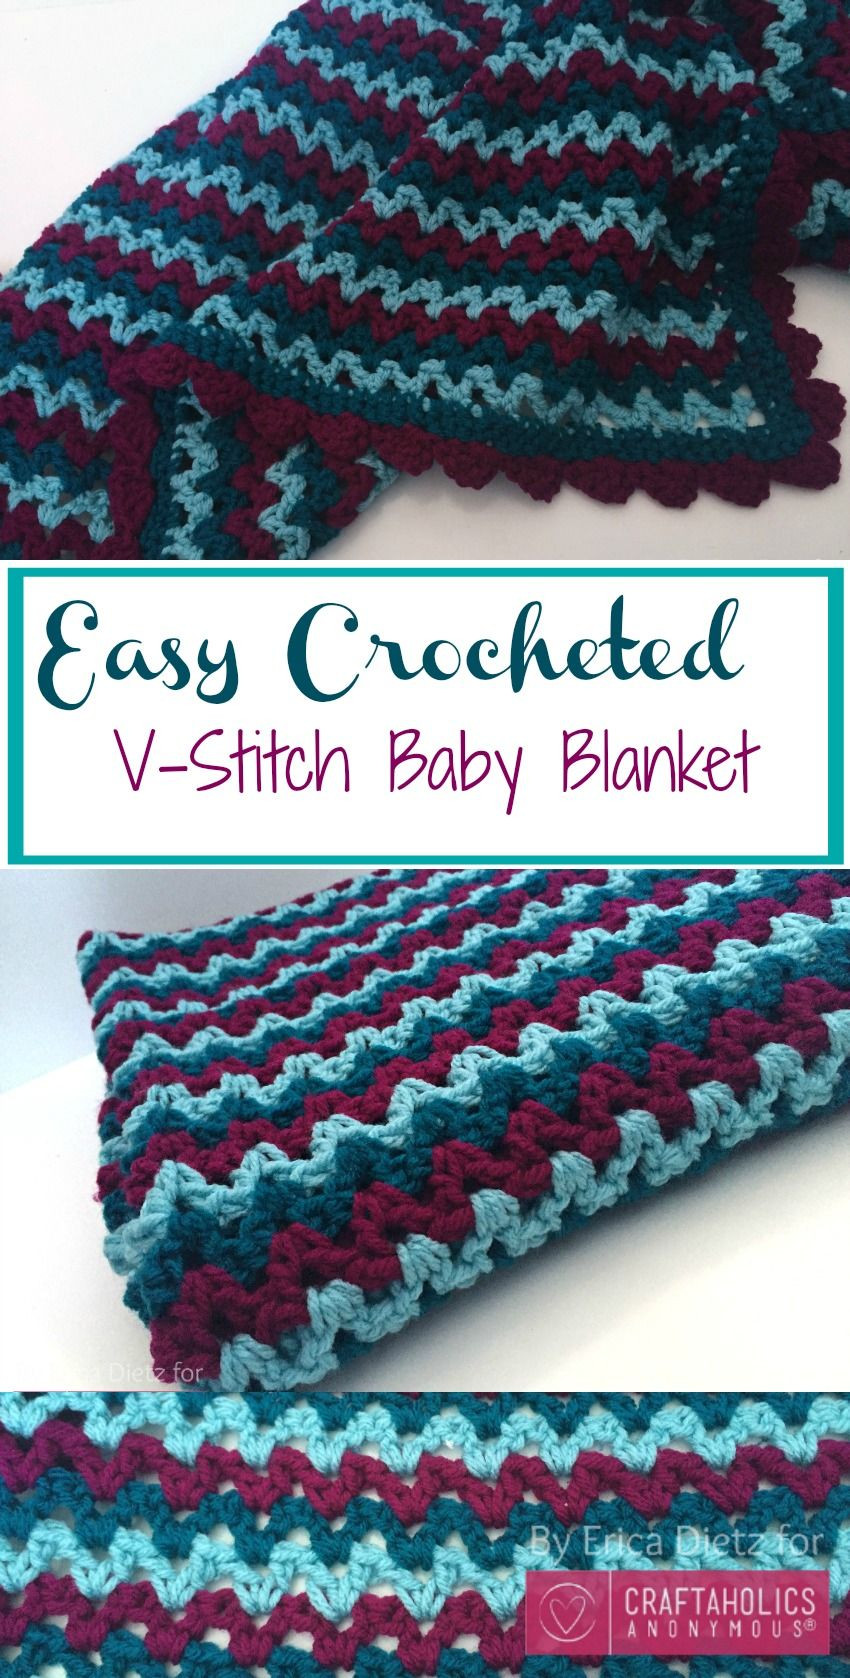 Different Crochet Patterns Lovely Easy Crochet Baby Blanket Of Brilliant 48 Pictures Different Crochet Patterns